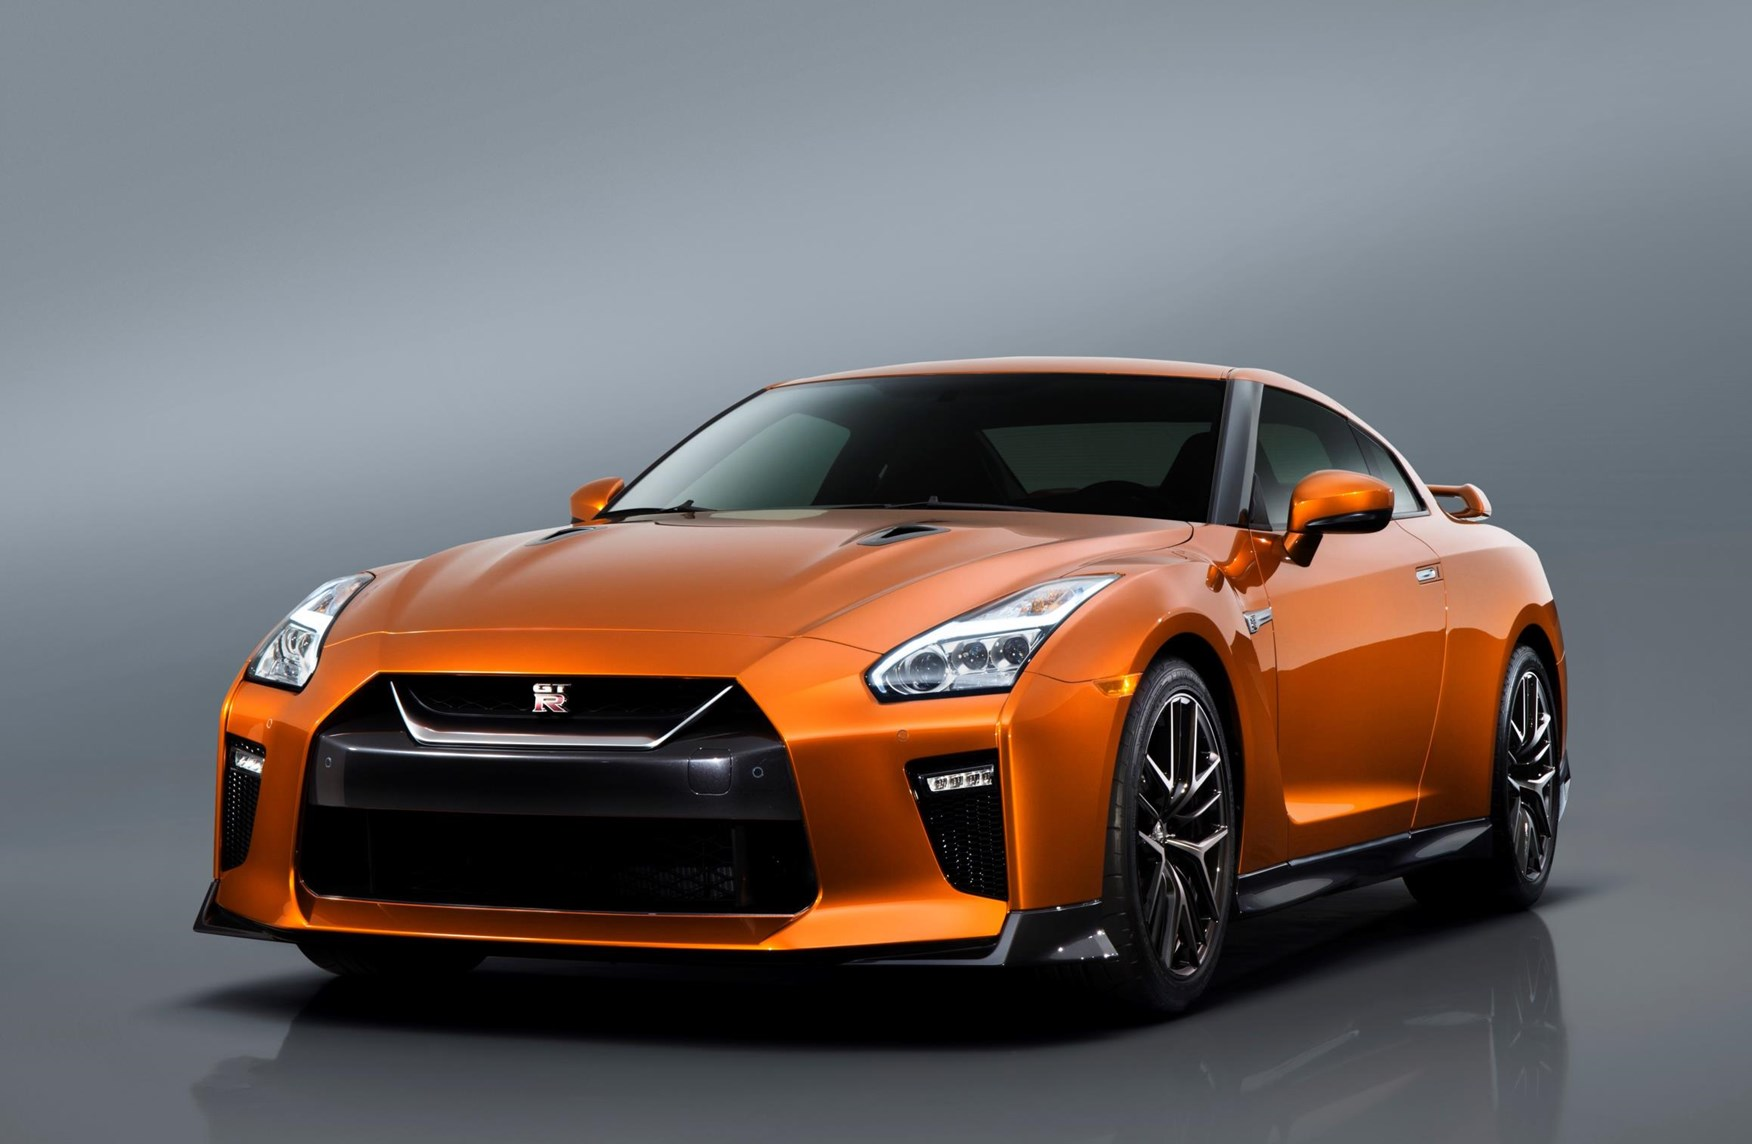 meet the new, even brawnier 2017 nissan gt-r: pricing and